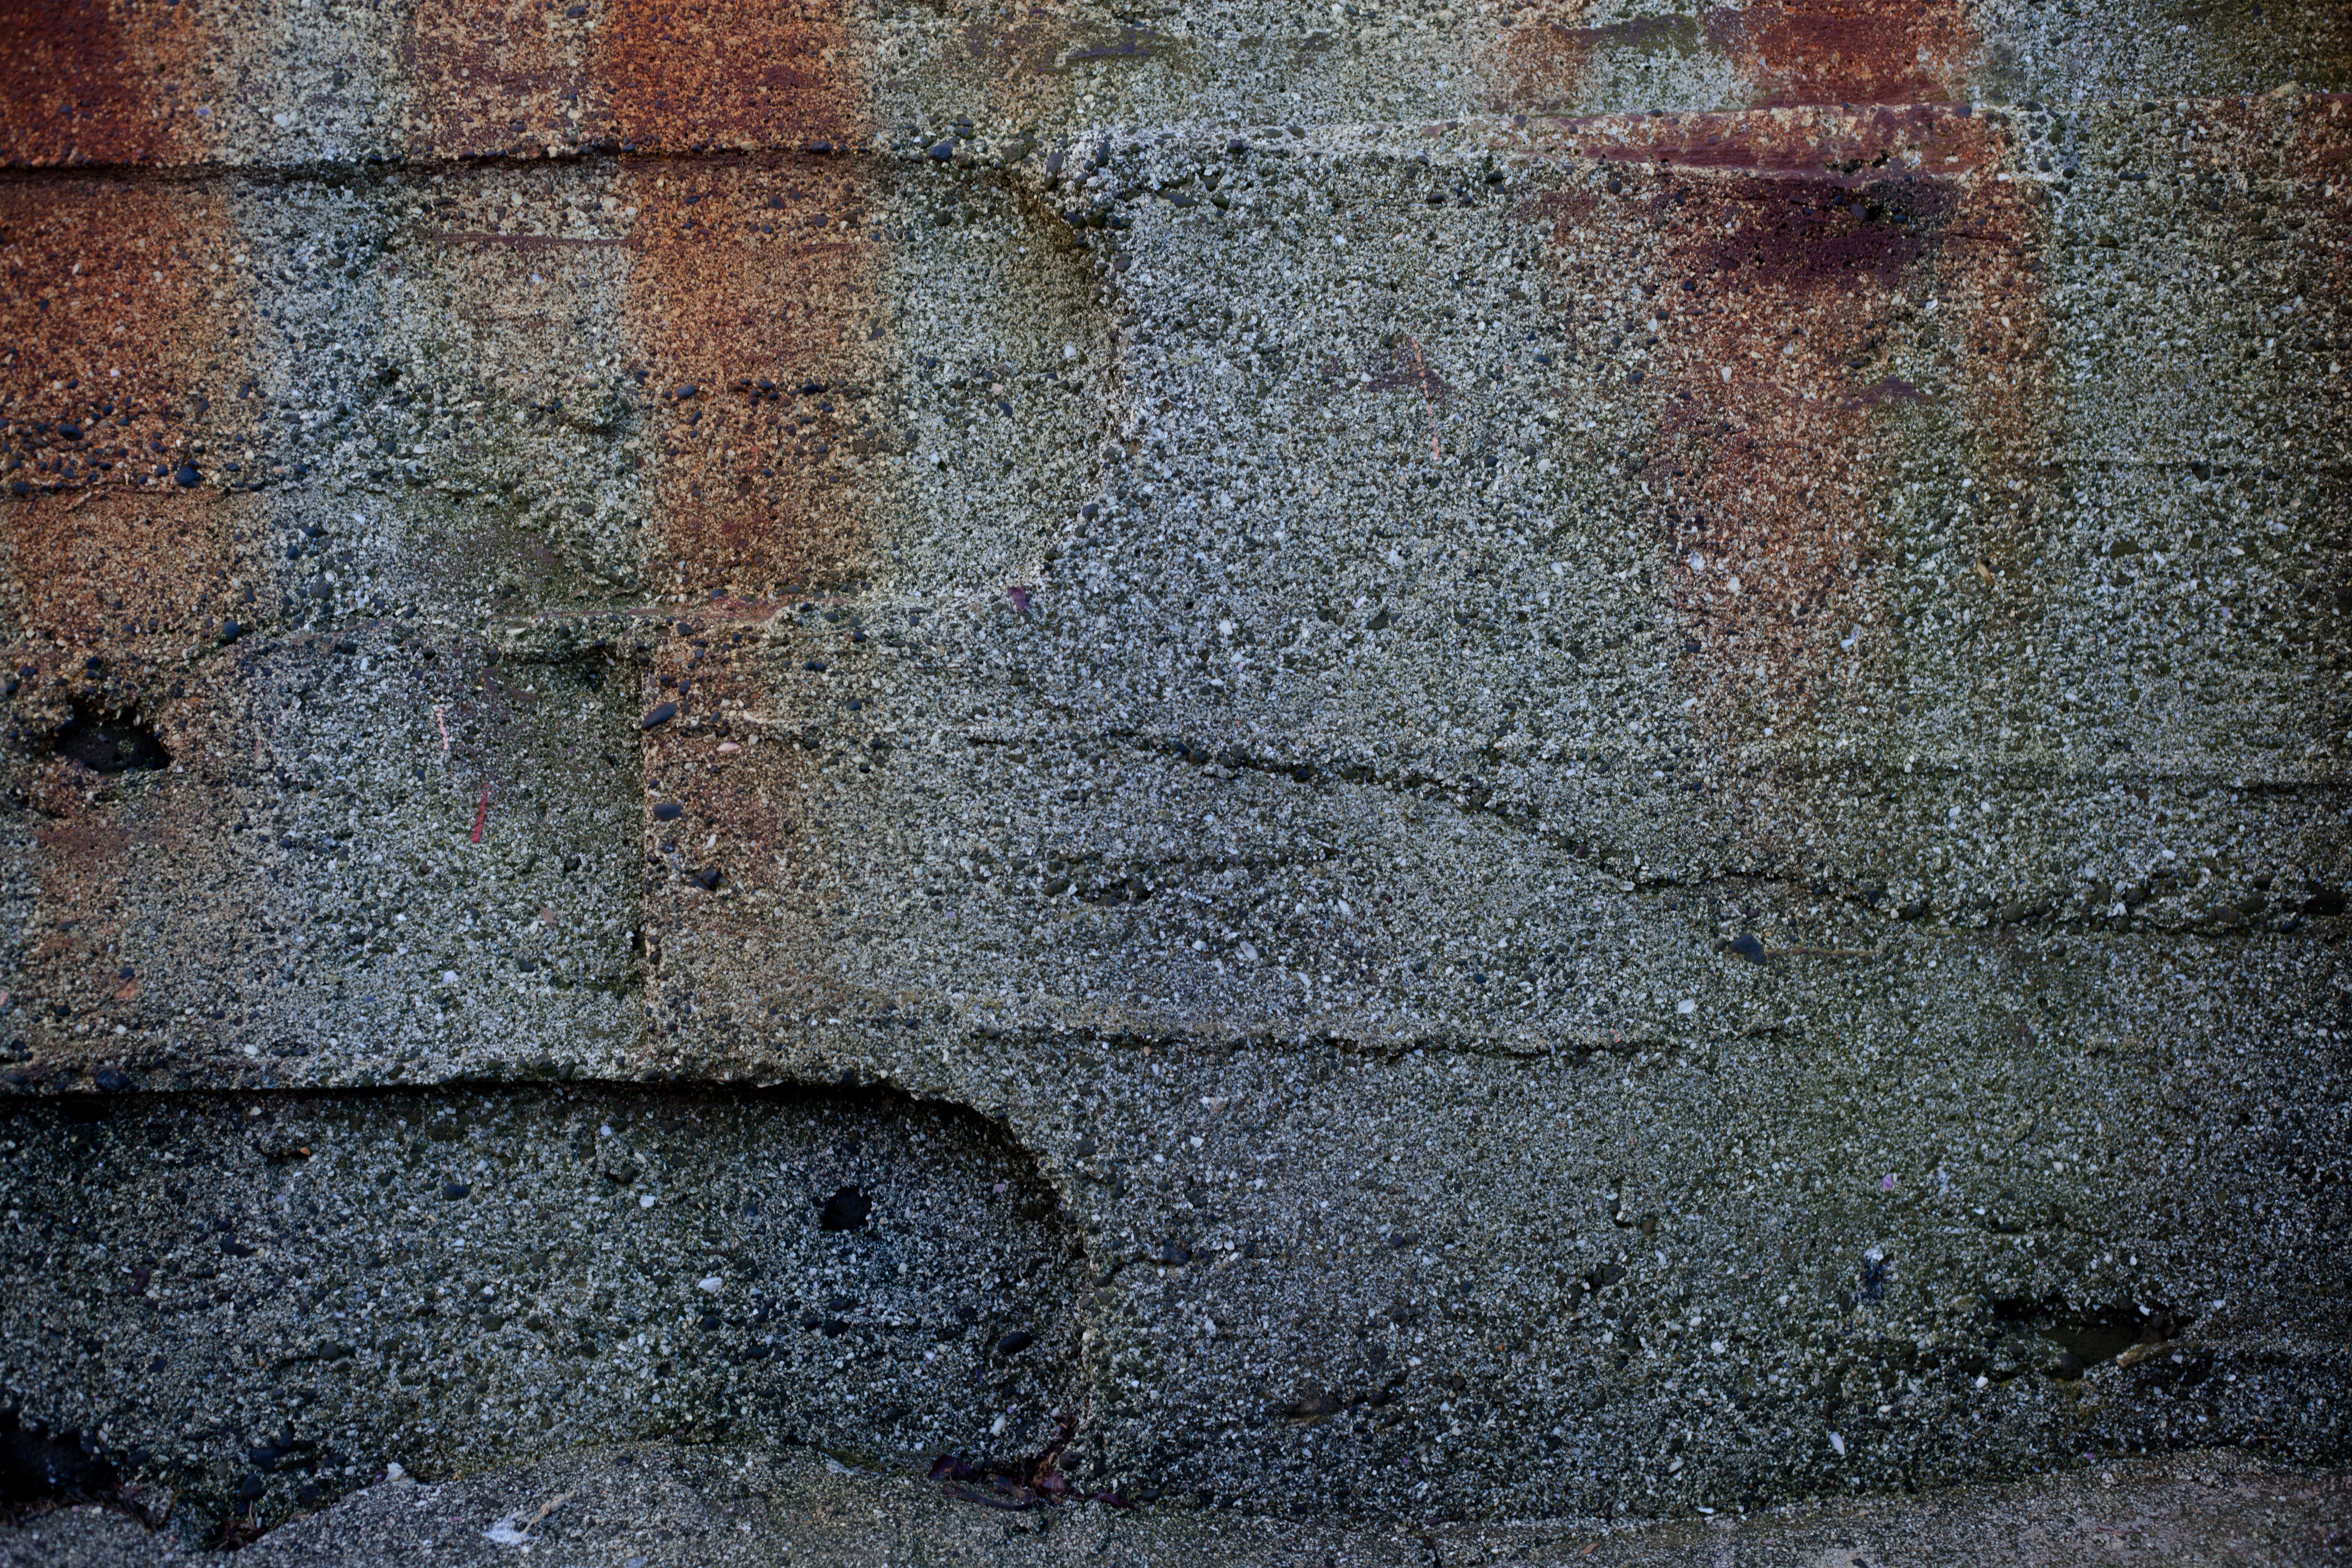 Rust stained concrete wall, Concrete, Dark, Grunge, Grungy, HQ Photo